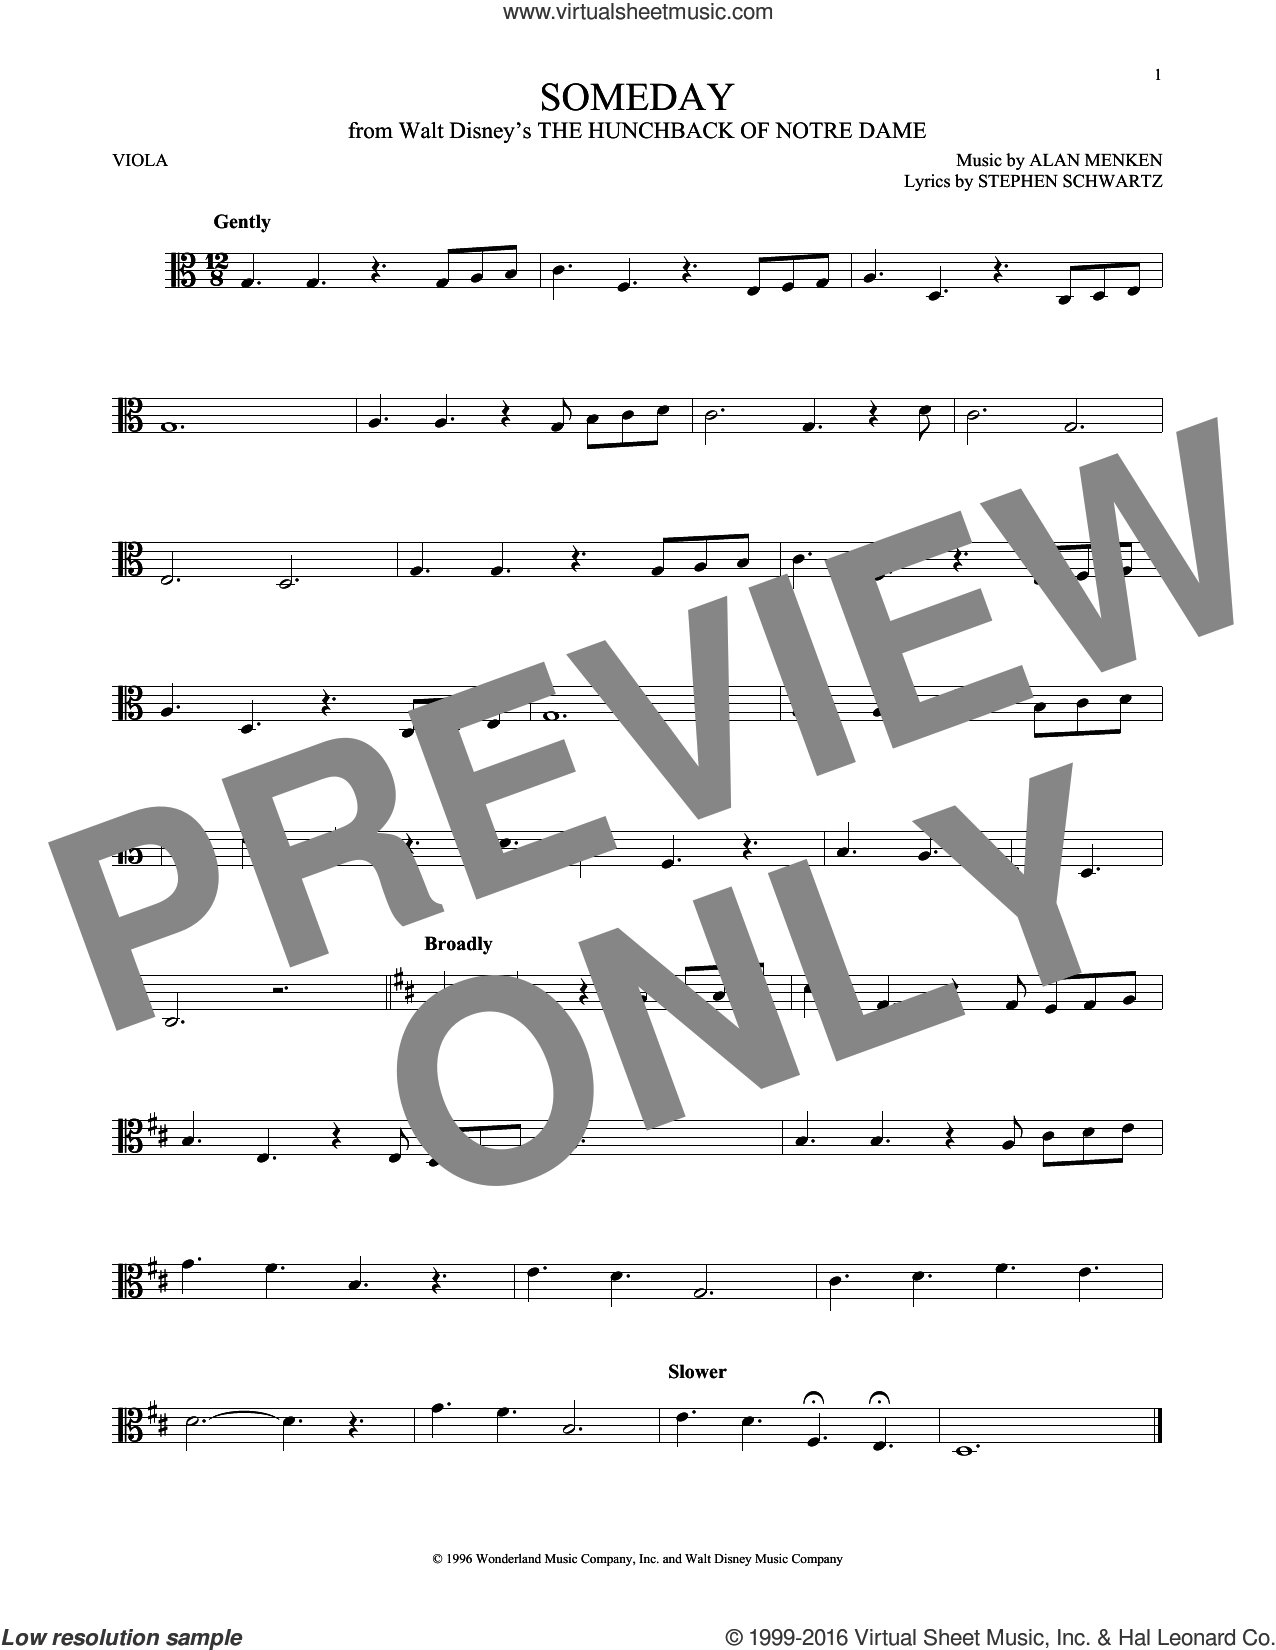 Someday (Esmeralda's Prayer) sheet music for viola solo by Alan Menken, Donna Summer and Stephen Schwartz. Score Image Preview.